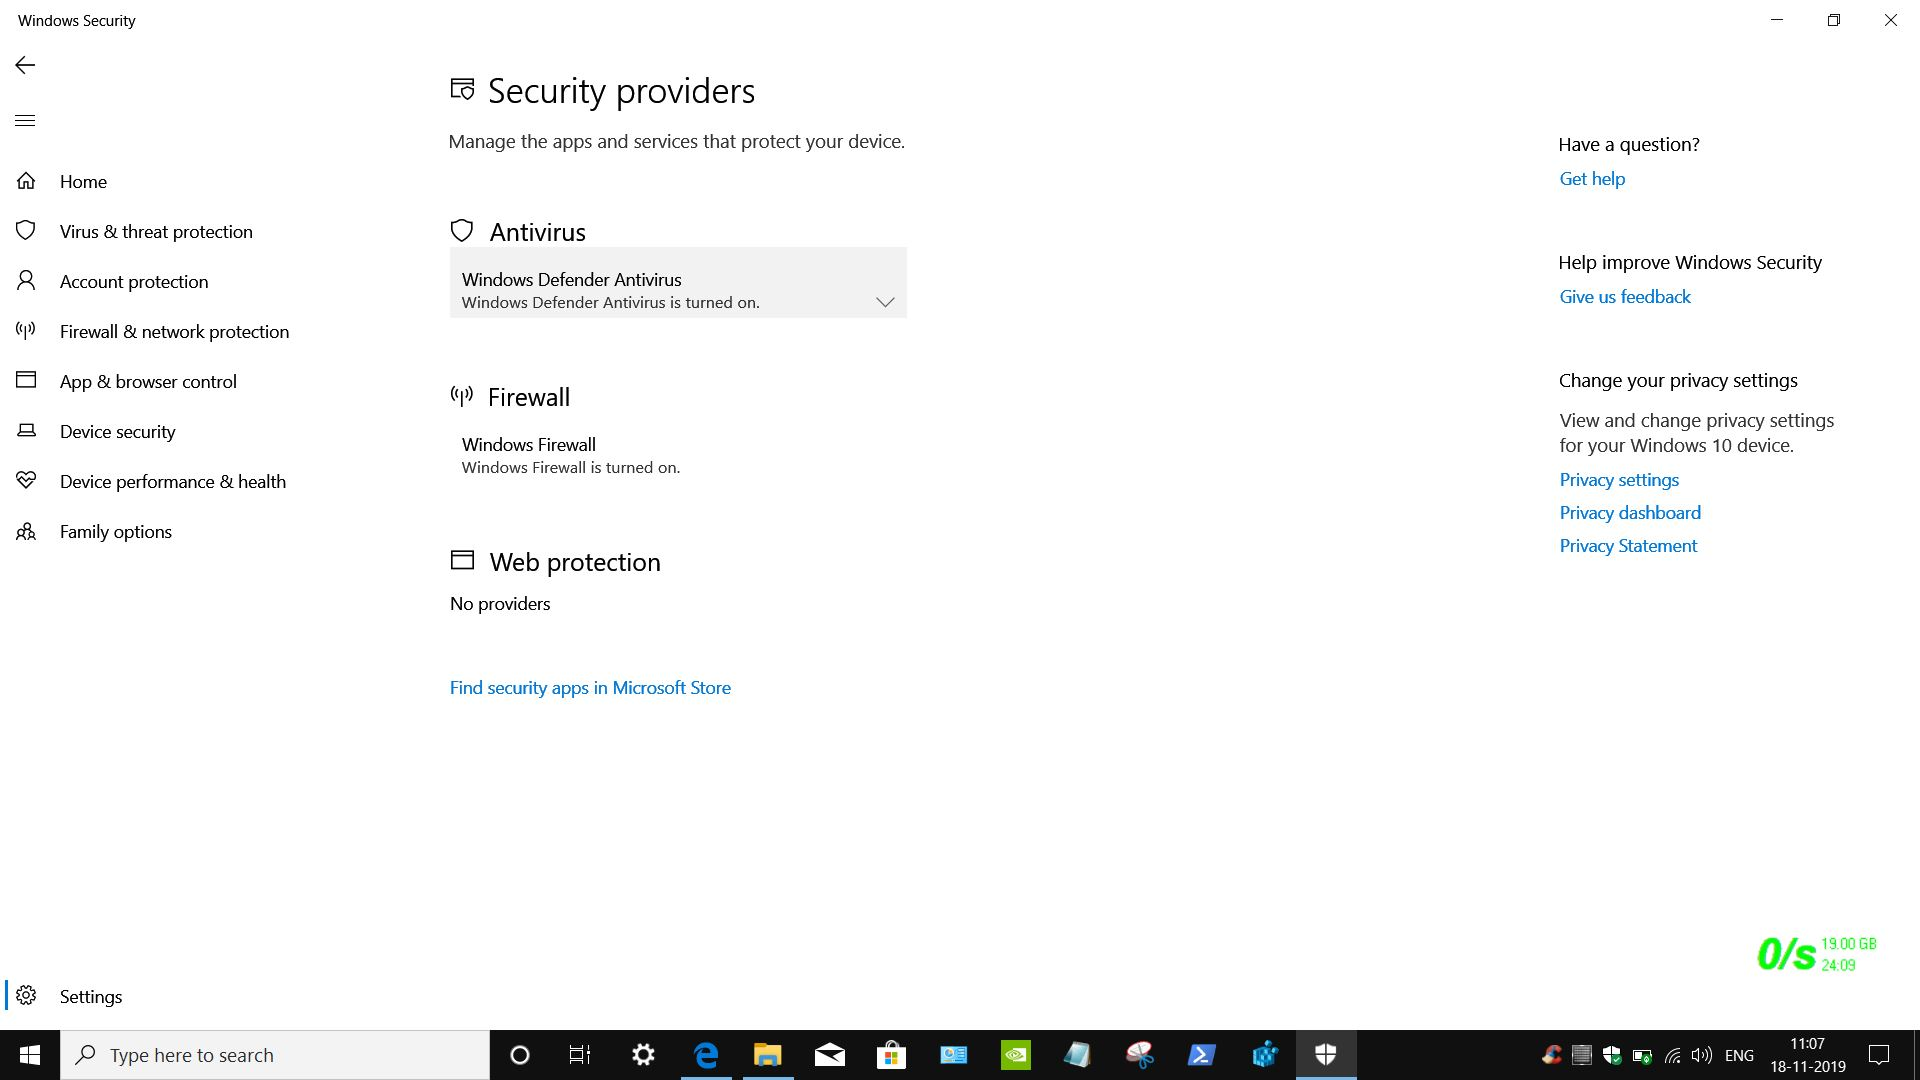 Does  Builtin Windows Defender provides   Web Protection in Windows 10 1909 Pro 64Bit ? ffcdecfd-4227-43e3-9bdf-c59d3897ba53?upload=true.jpg